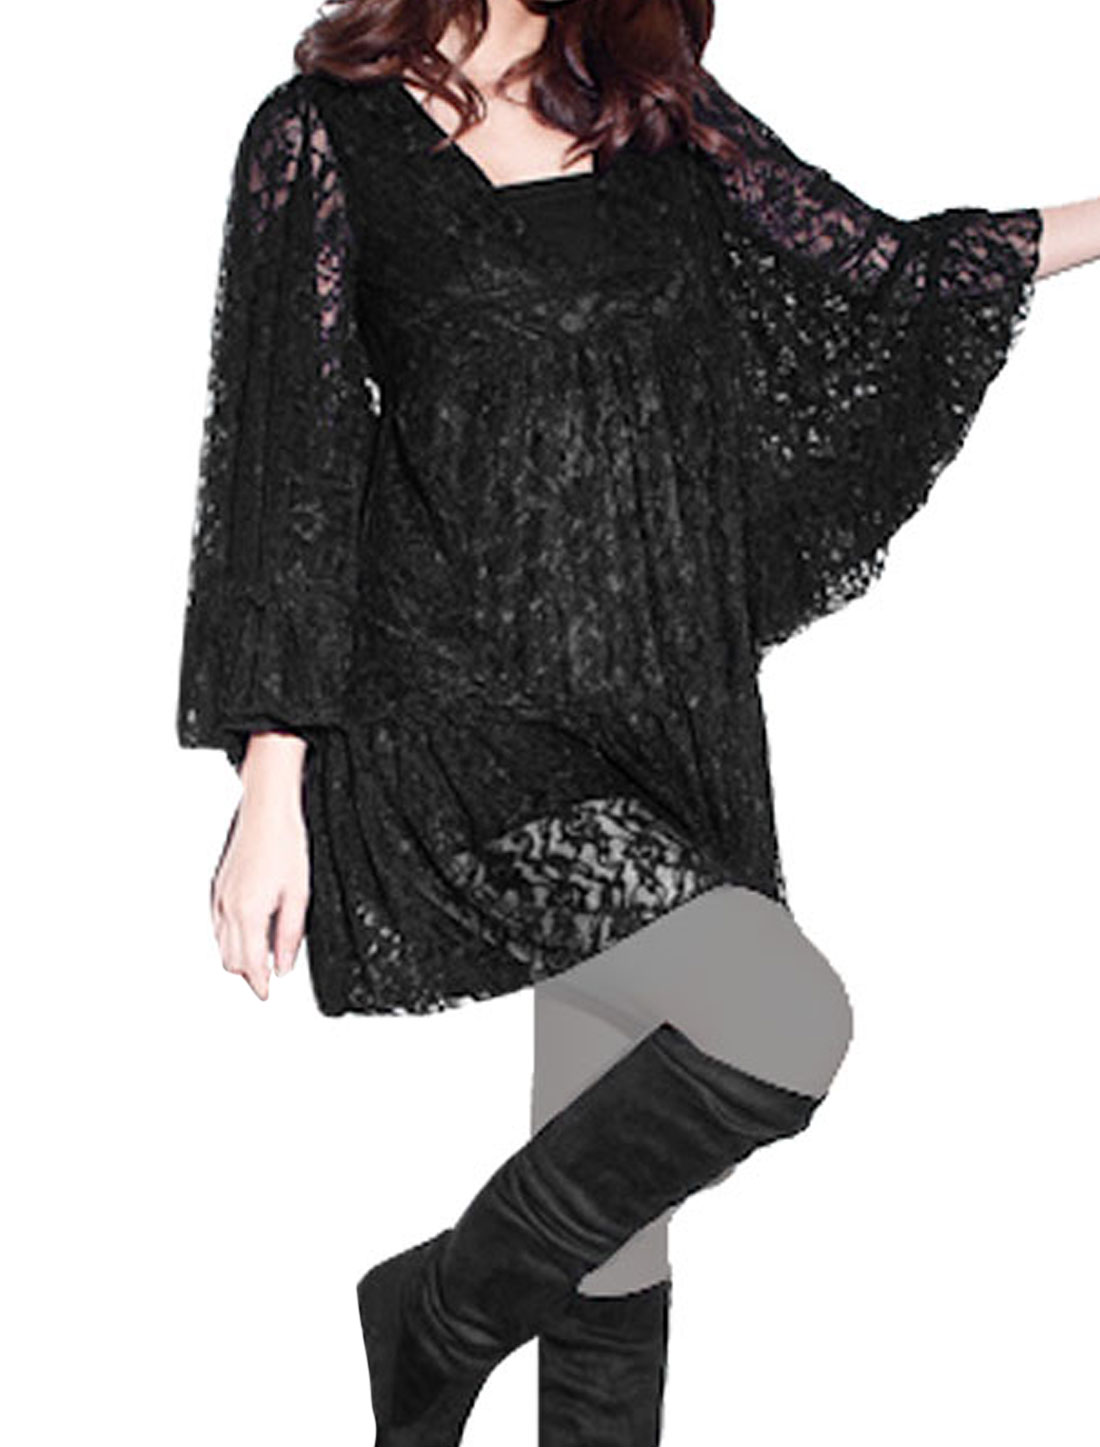 Woman Lace Guipure Sheer Sleeve V Neck Empire Waist Tunic Blouse Black XS